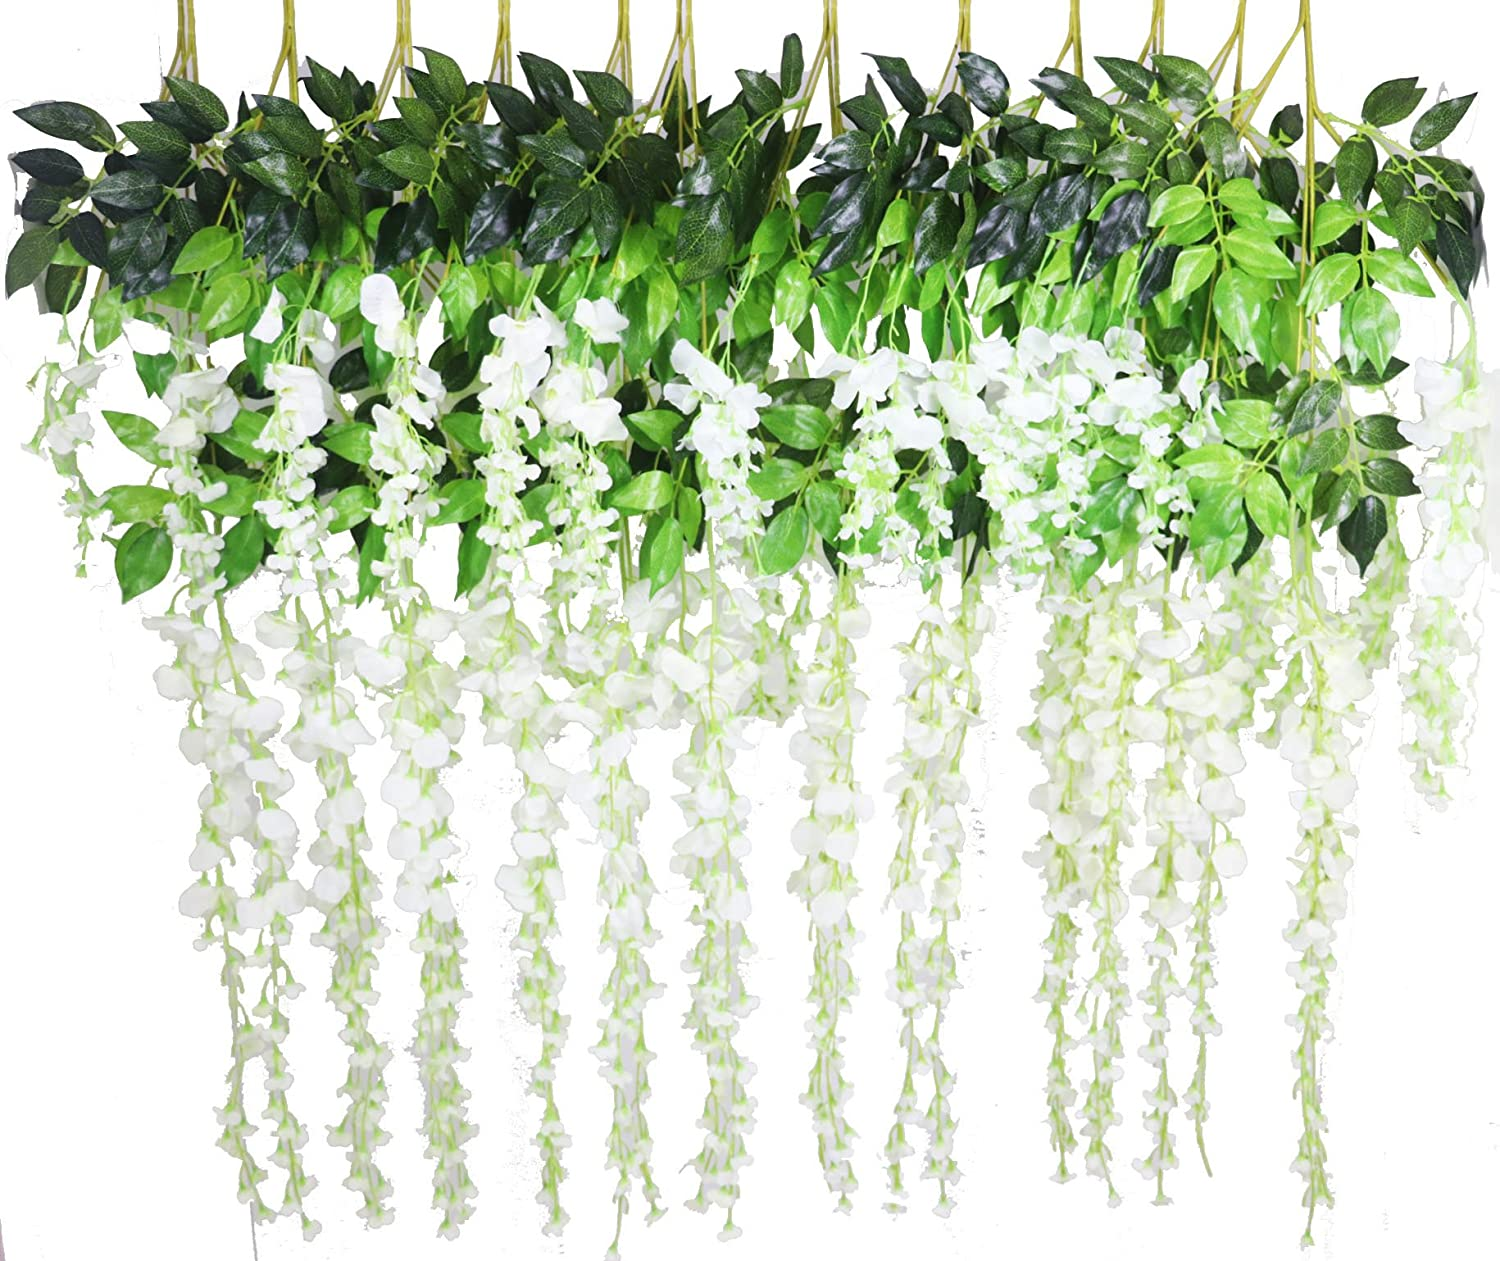 Lannu 12 Pack 3.6 FT Long Artificial Wisteria Flowers Silk Hanging Vine Ratta Flowers String Bush for Home Wedding Party Decor, Cream